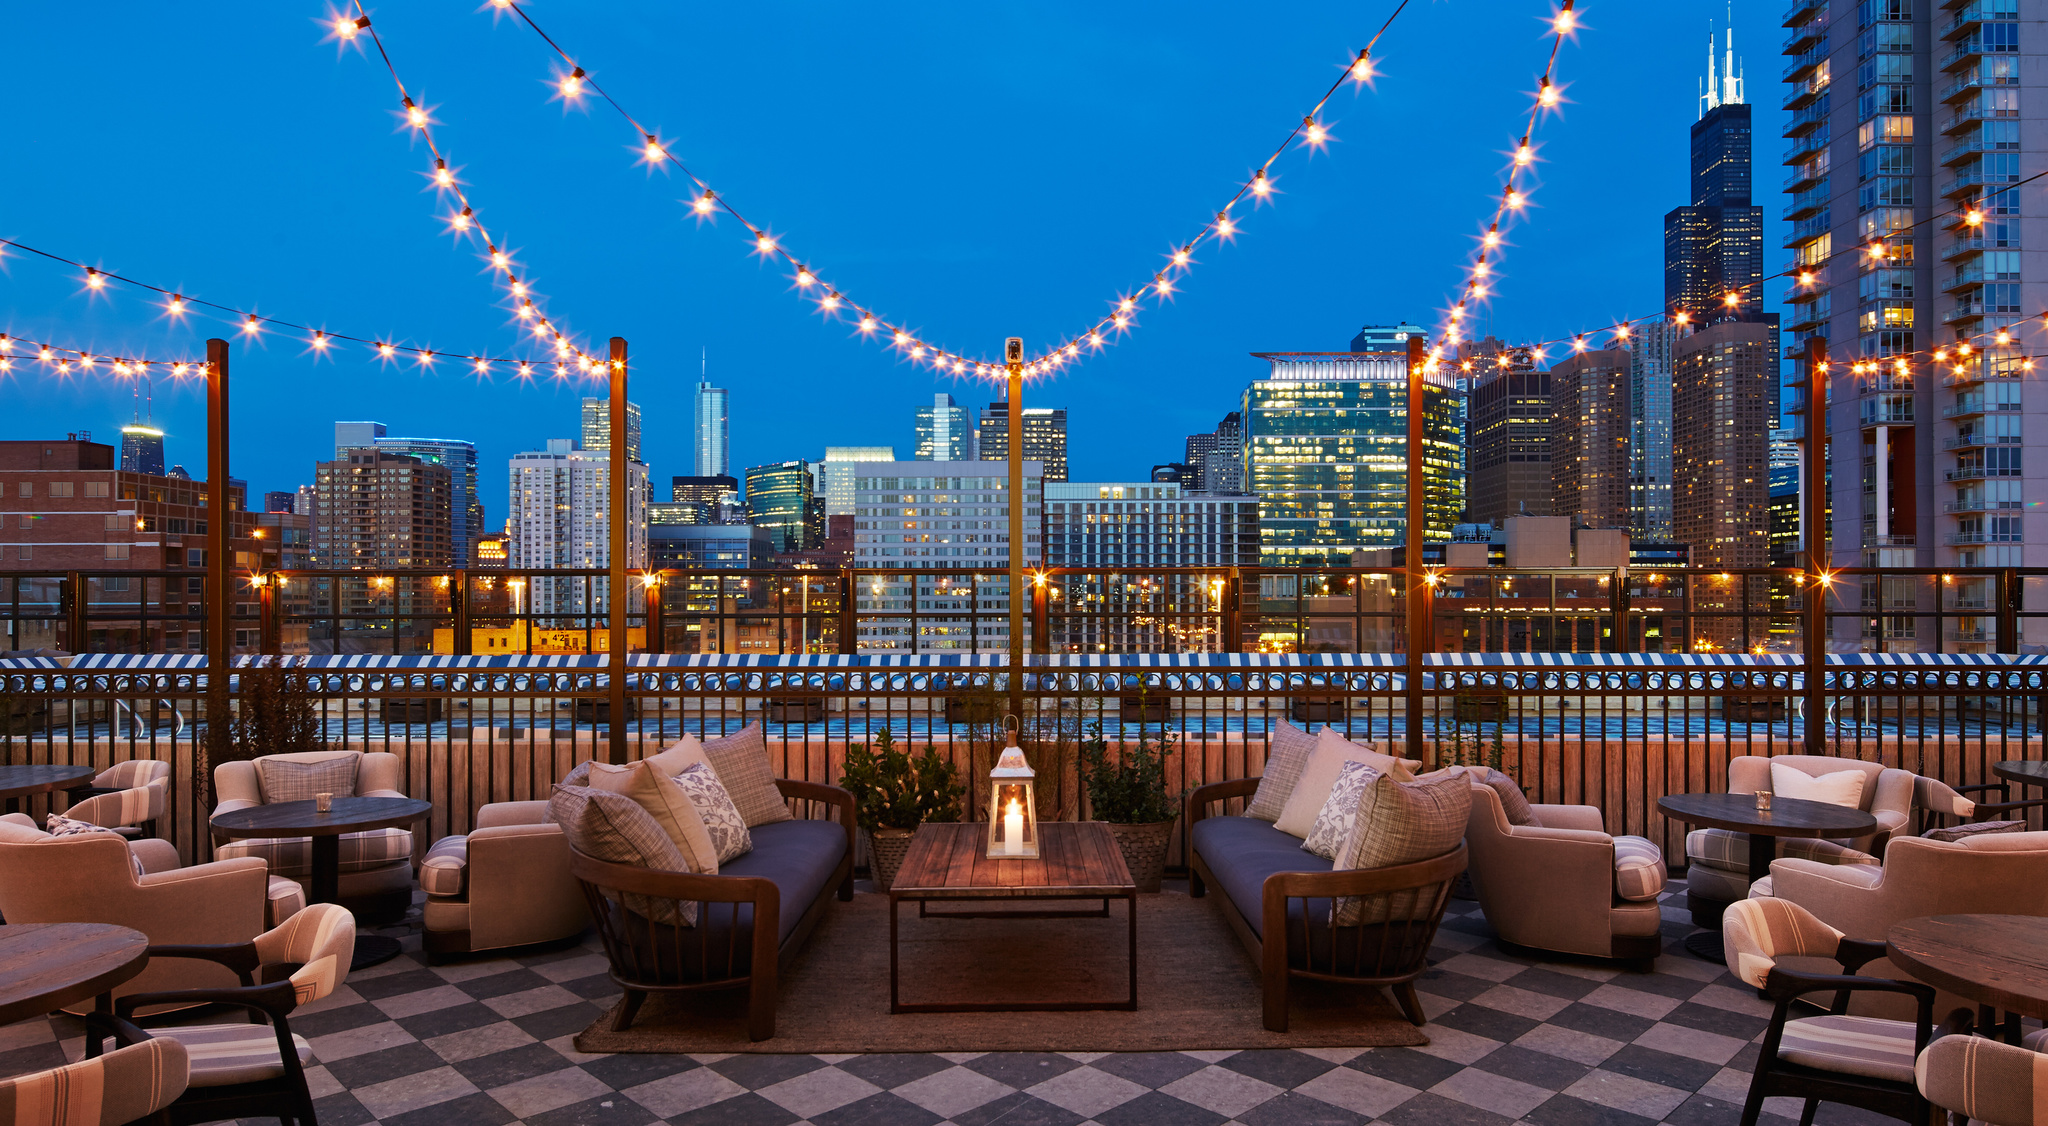 SoHo House Chicago Roof Deck